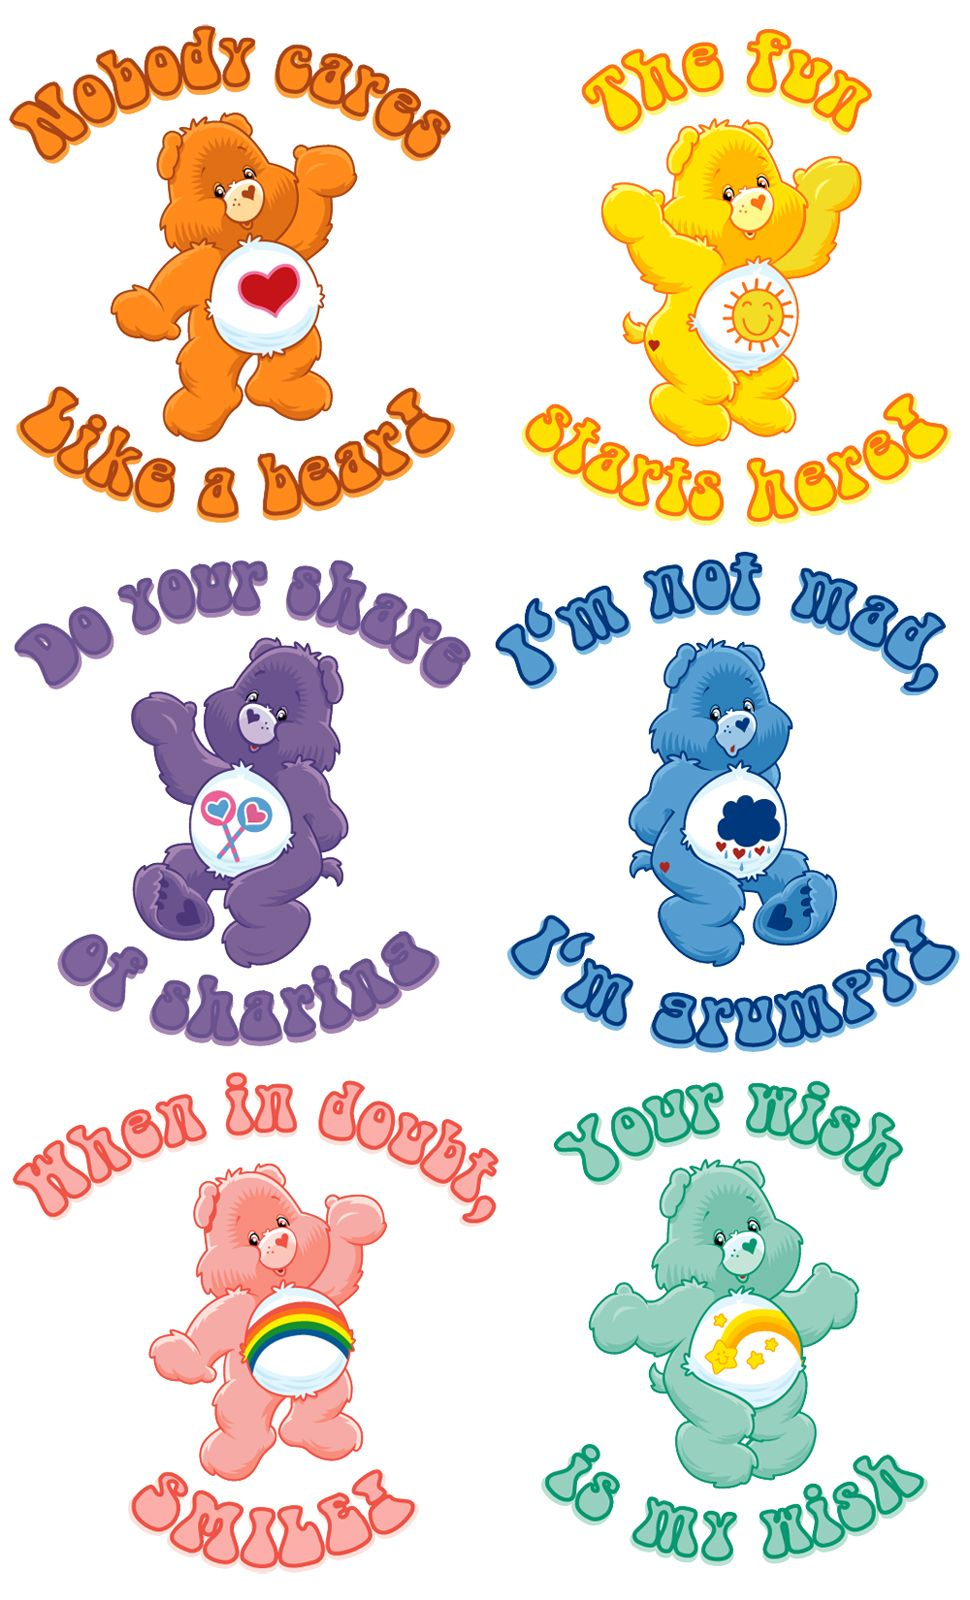 Carebears Is It Weird That They Still Make Me Insanely Happy Just